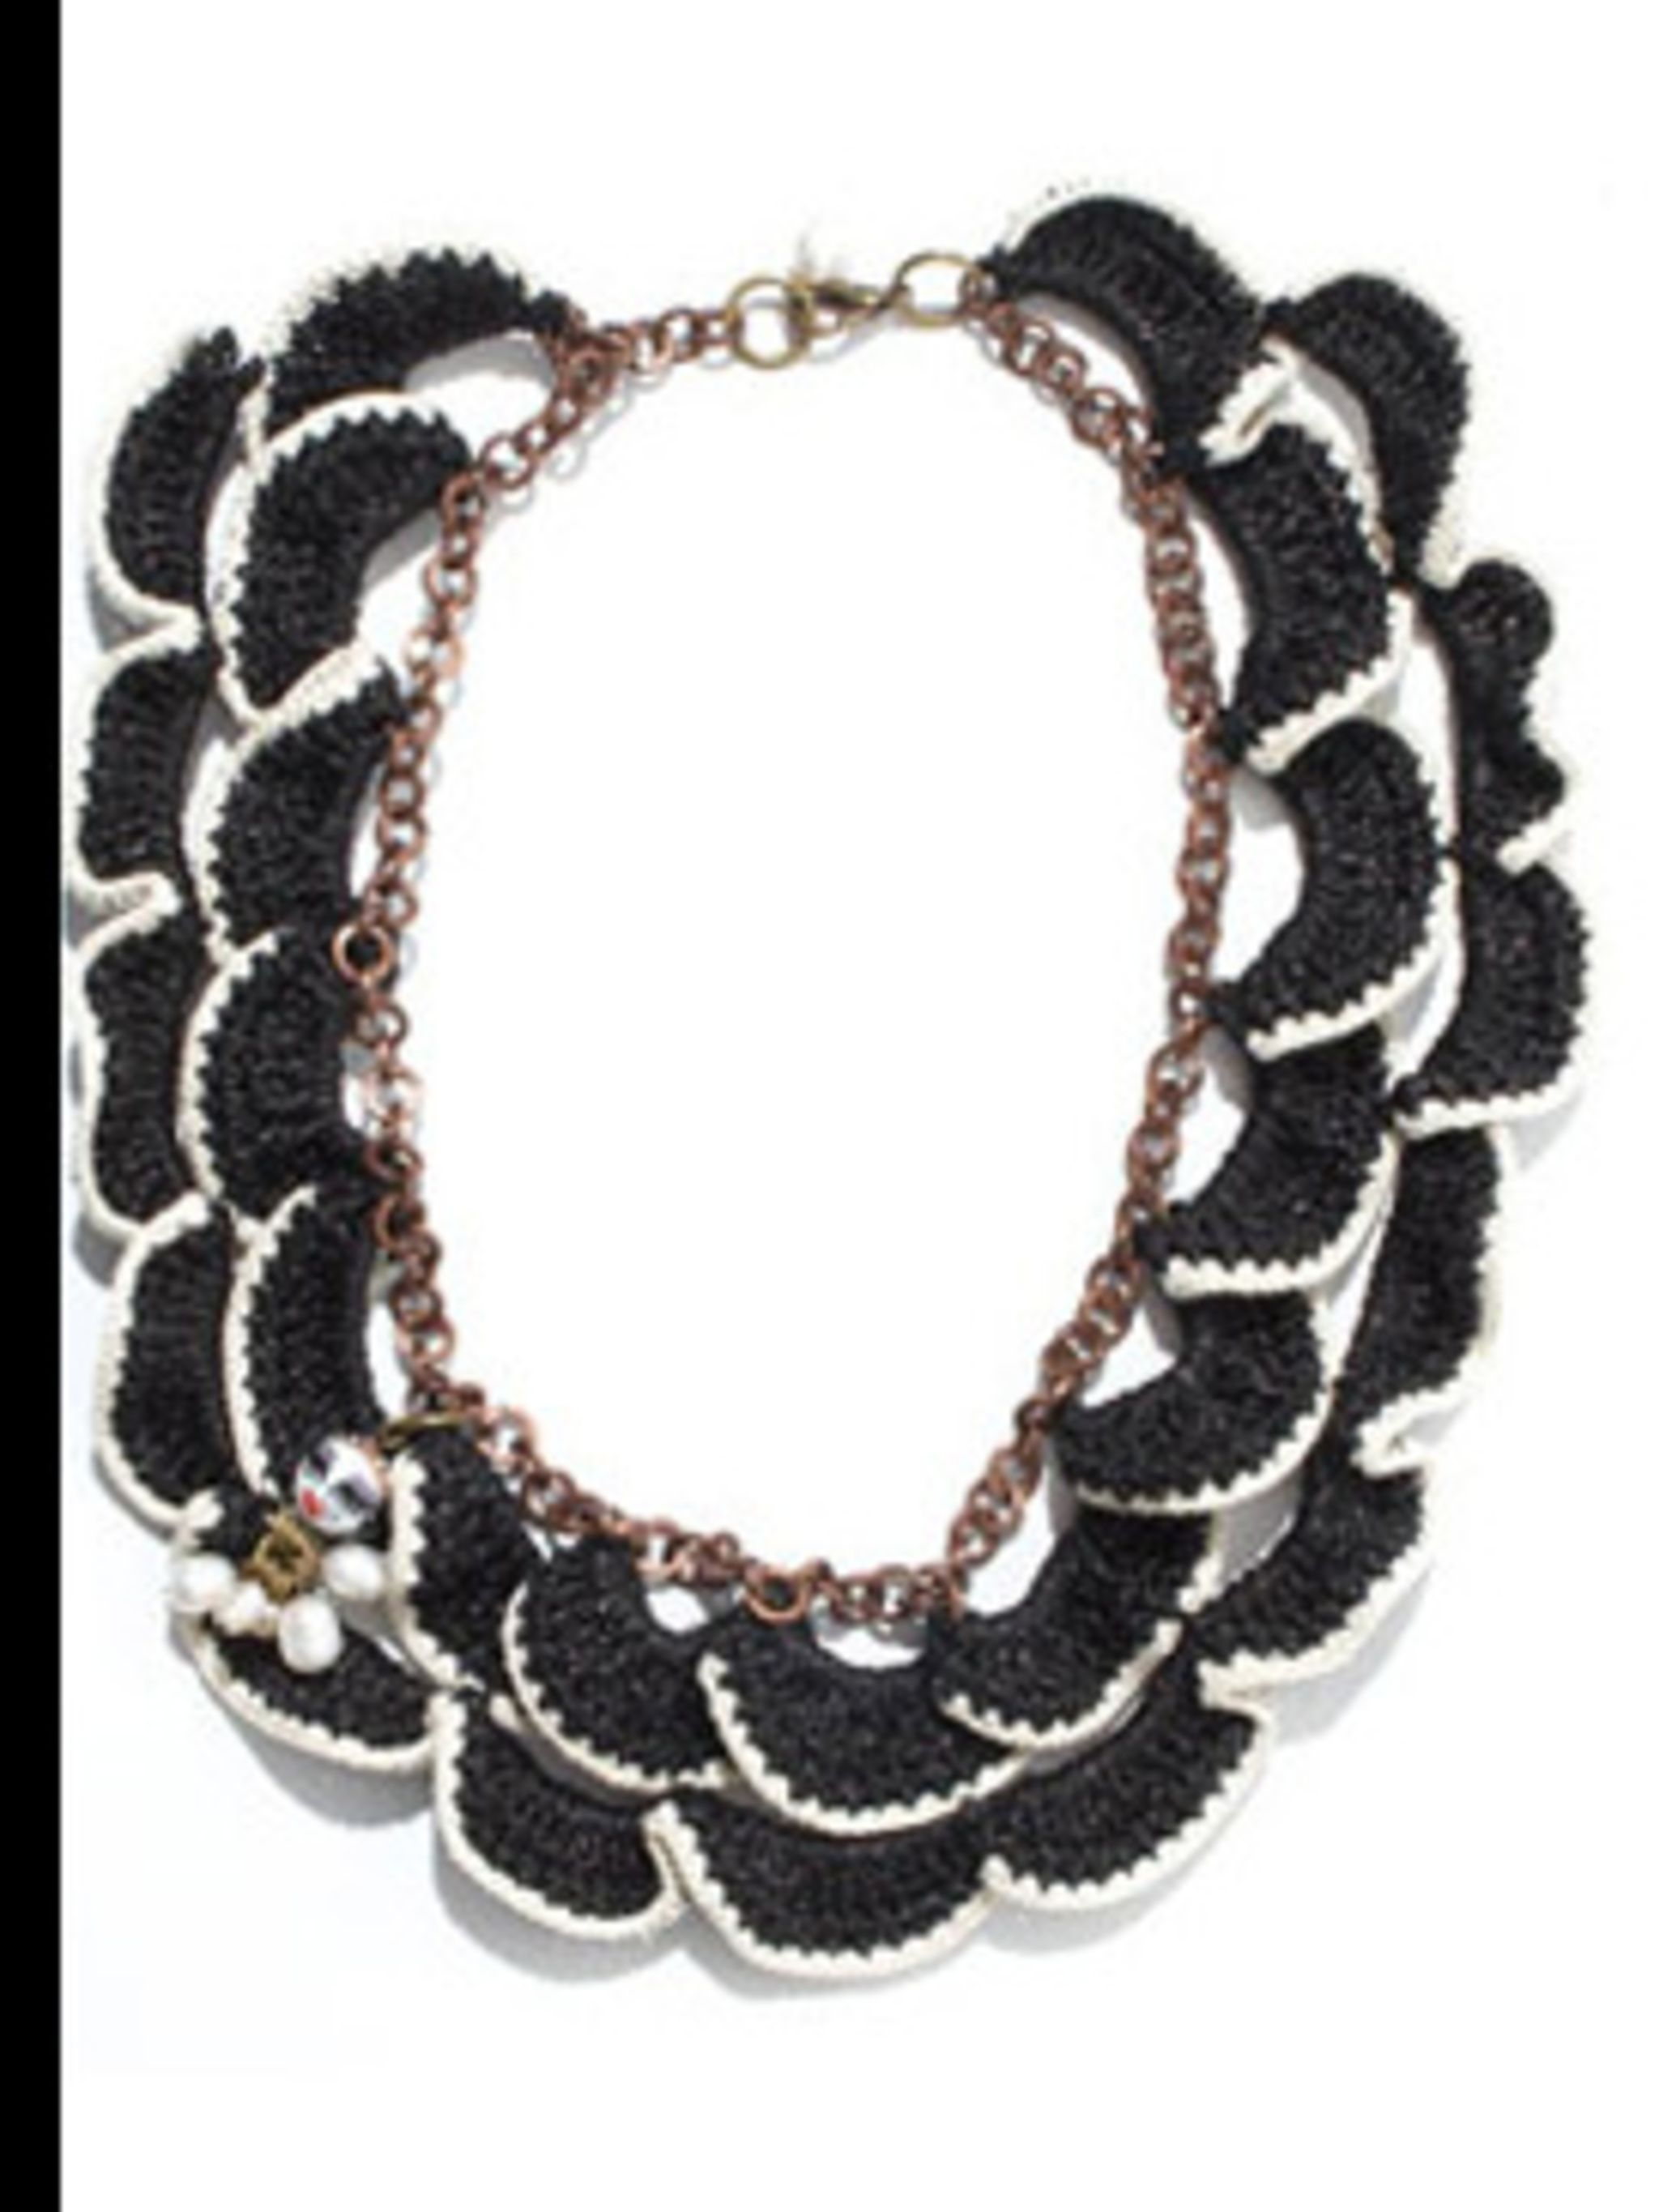 "<p>Necklace, £65.00 by Adorisadora at <a href=""http://www.dolcev.com/product.php?ProdID=921&DeptID=30"">Dolce V</a></p>"